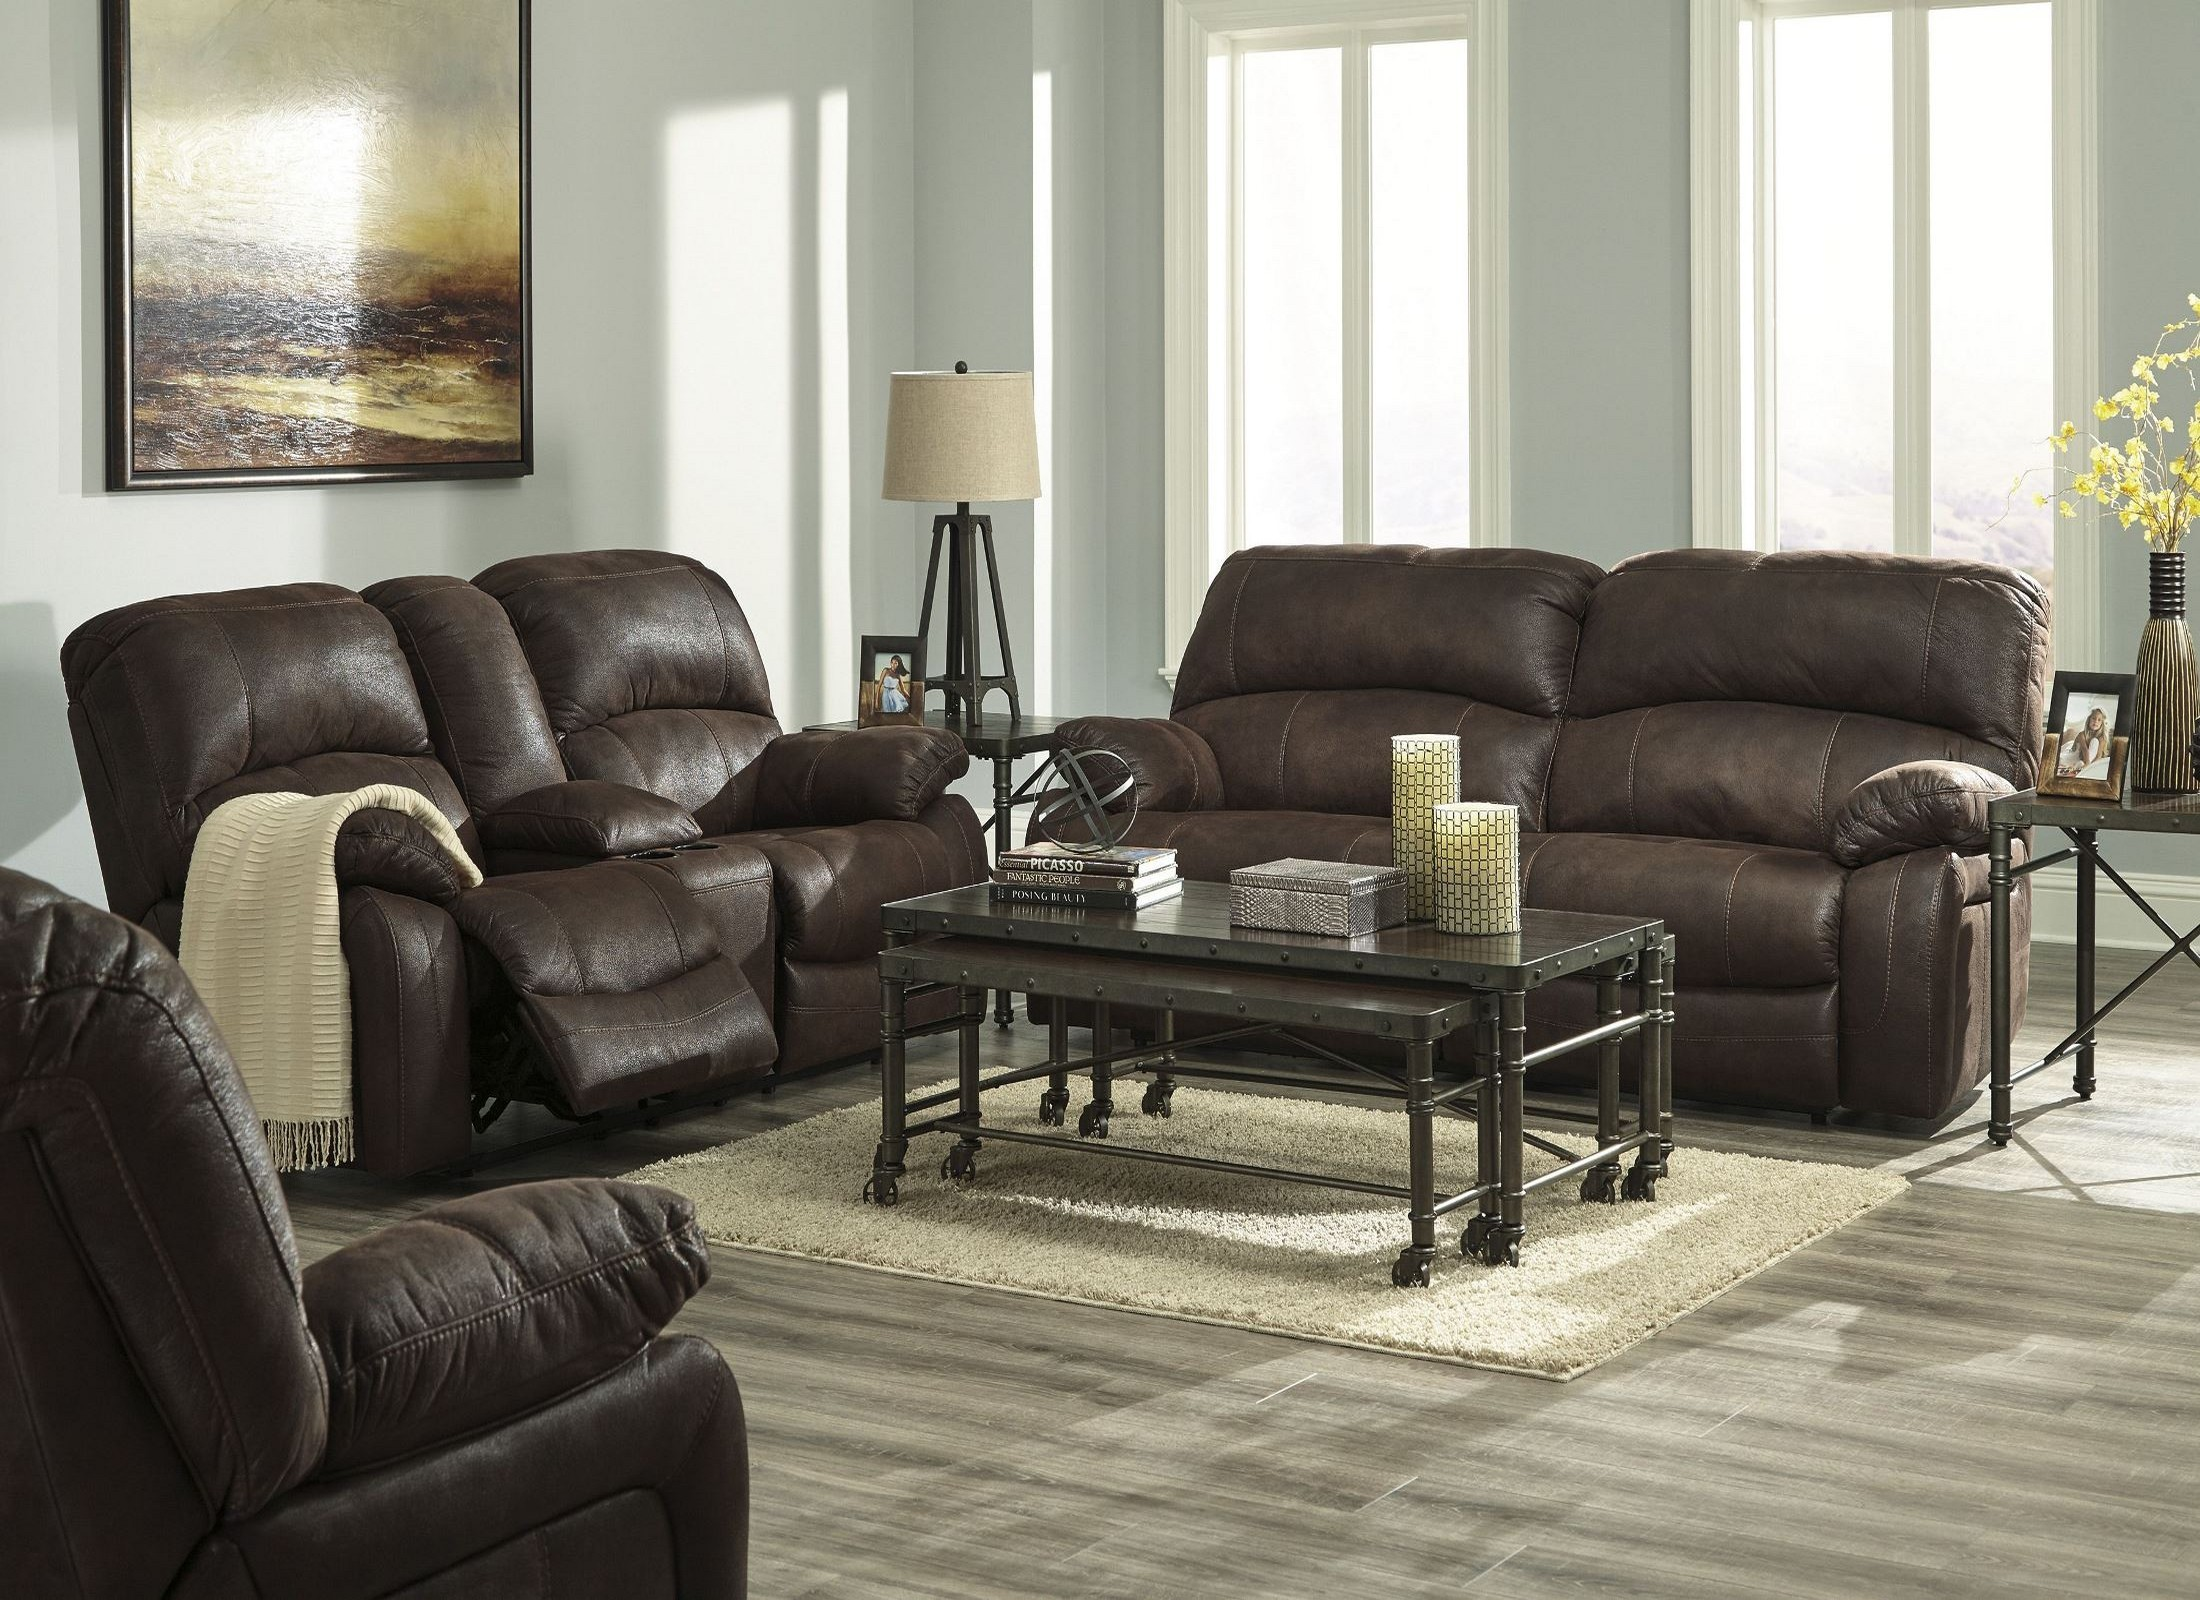 Zavier truffle 2 seat power reclining living room set from for 7 seater living room set